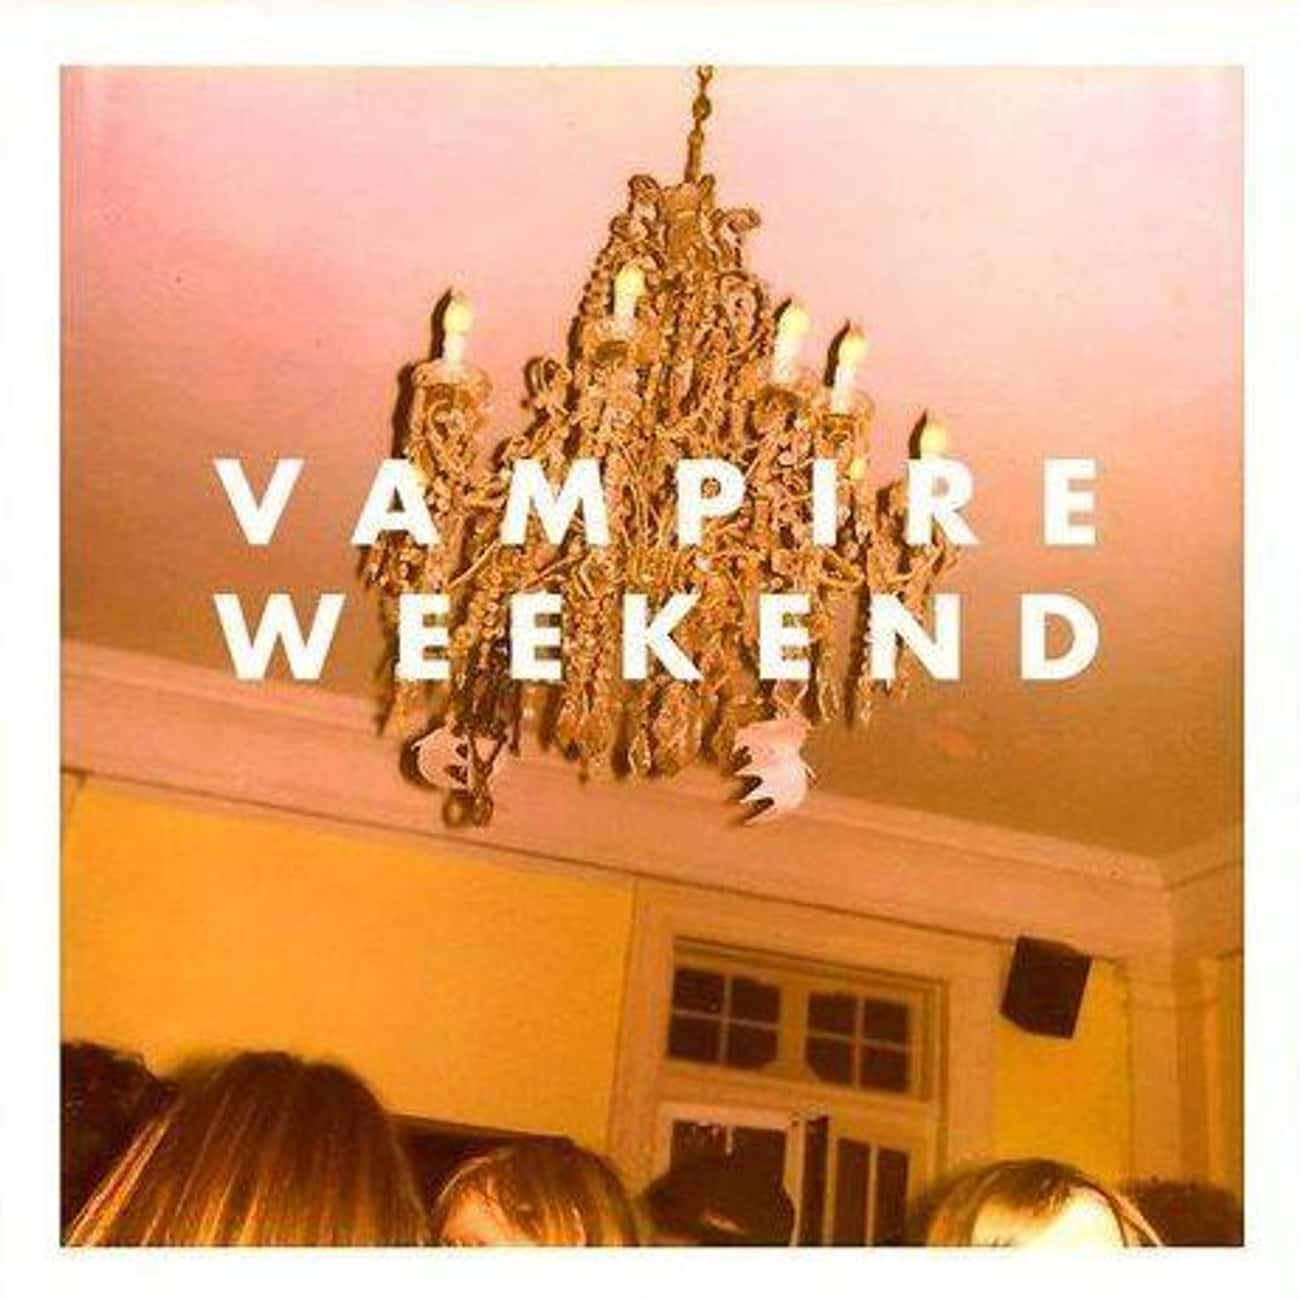 Vampire Weekend is listed (or ranked) 2 on the list The Best Vampire Weekend Albums, Ranked